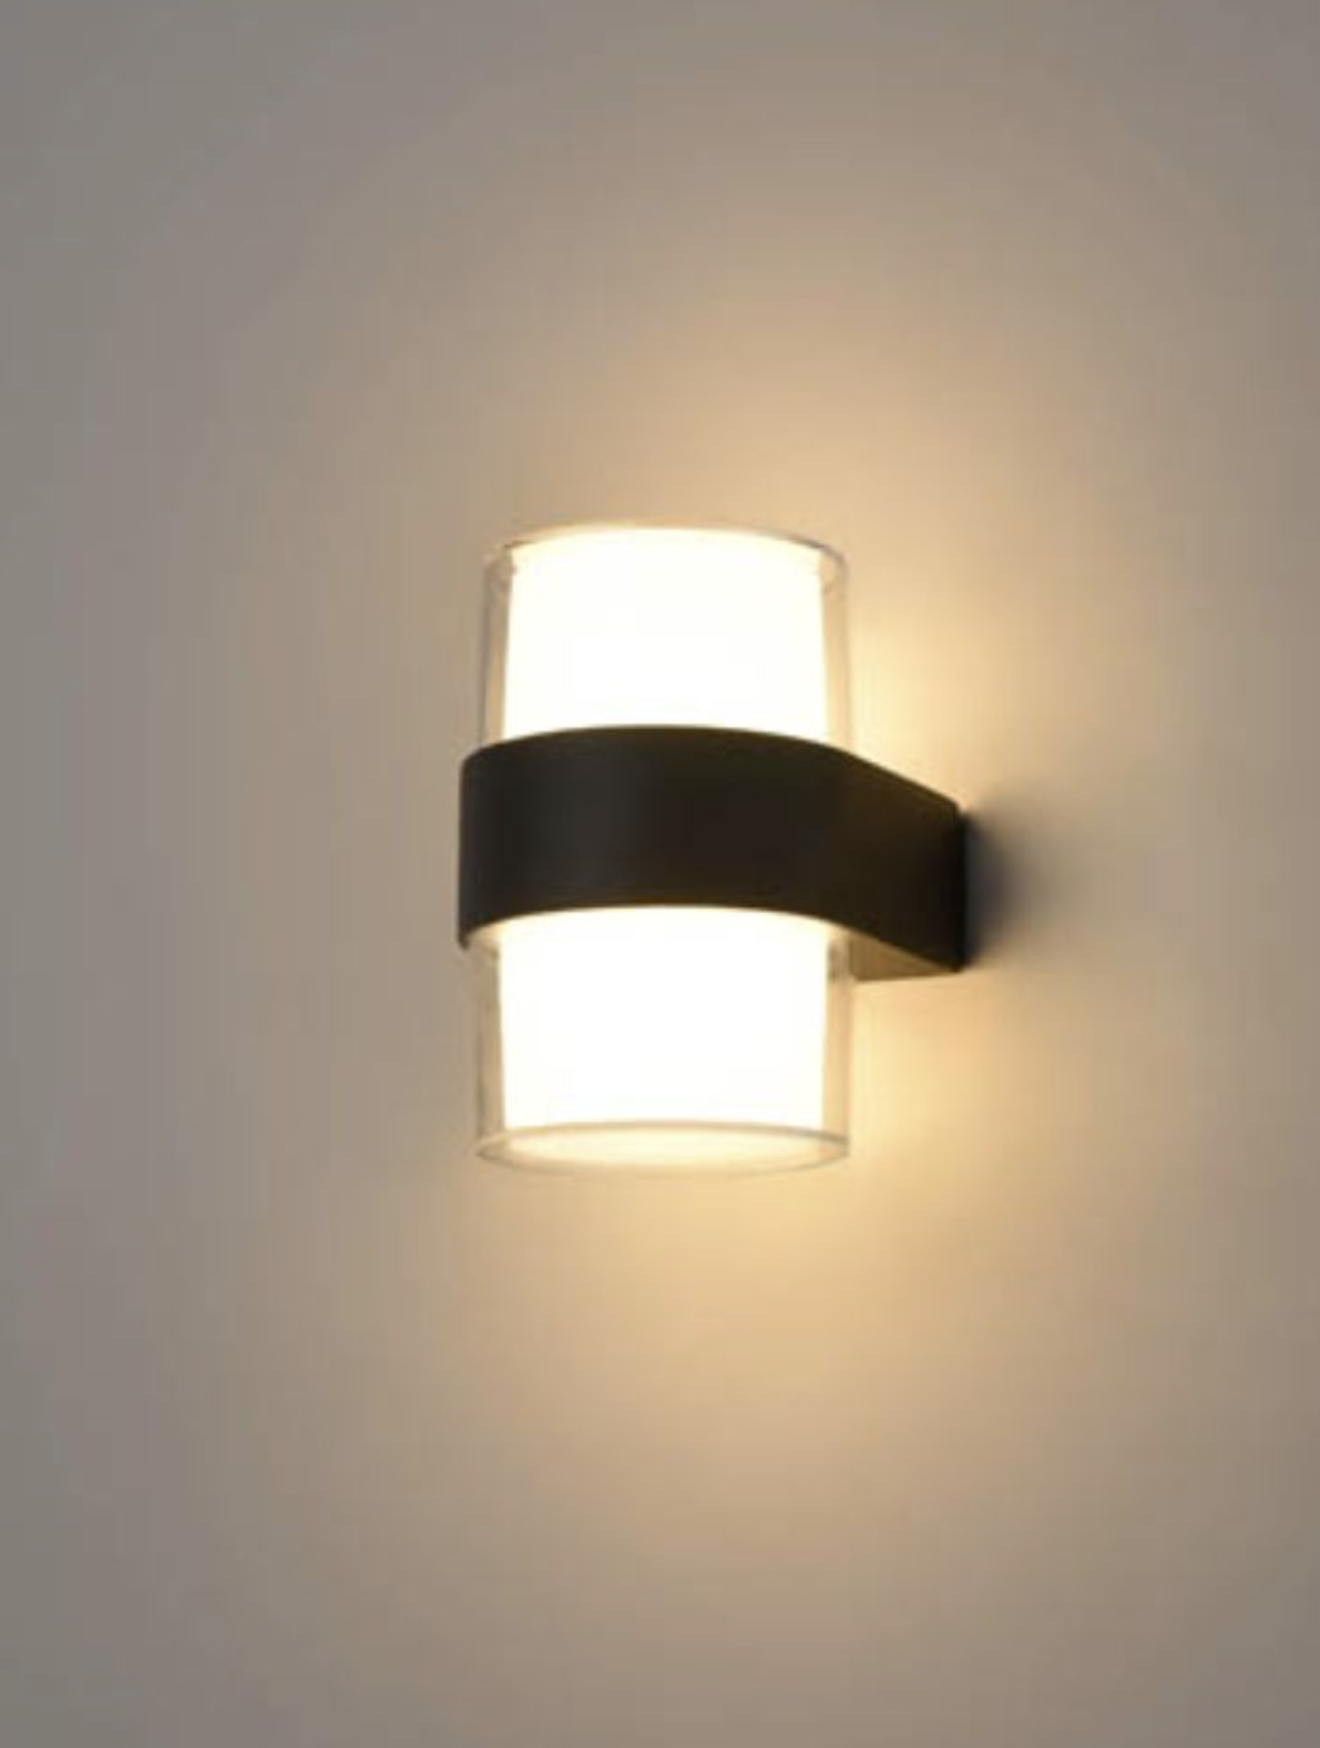 AUR Compact Matt Black Outdoor Wall Light - ID 10011